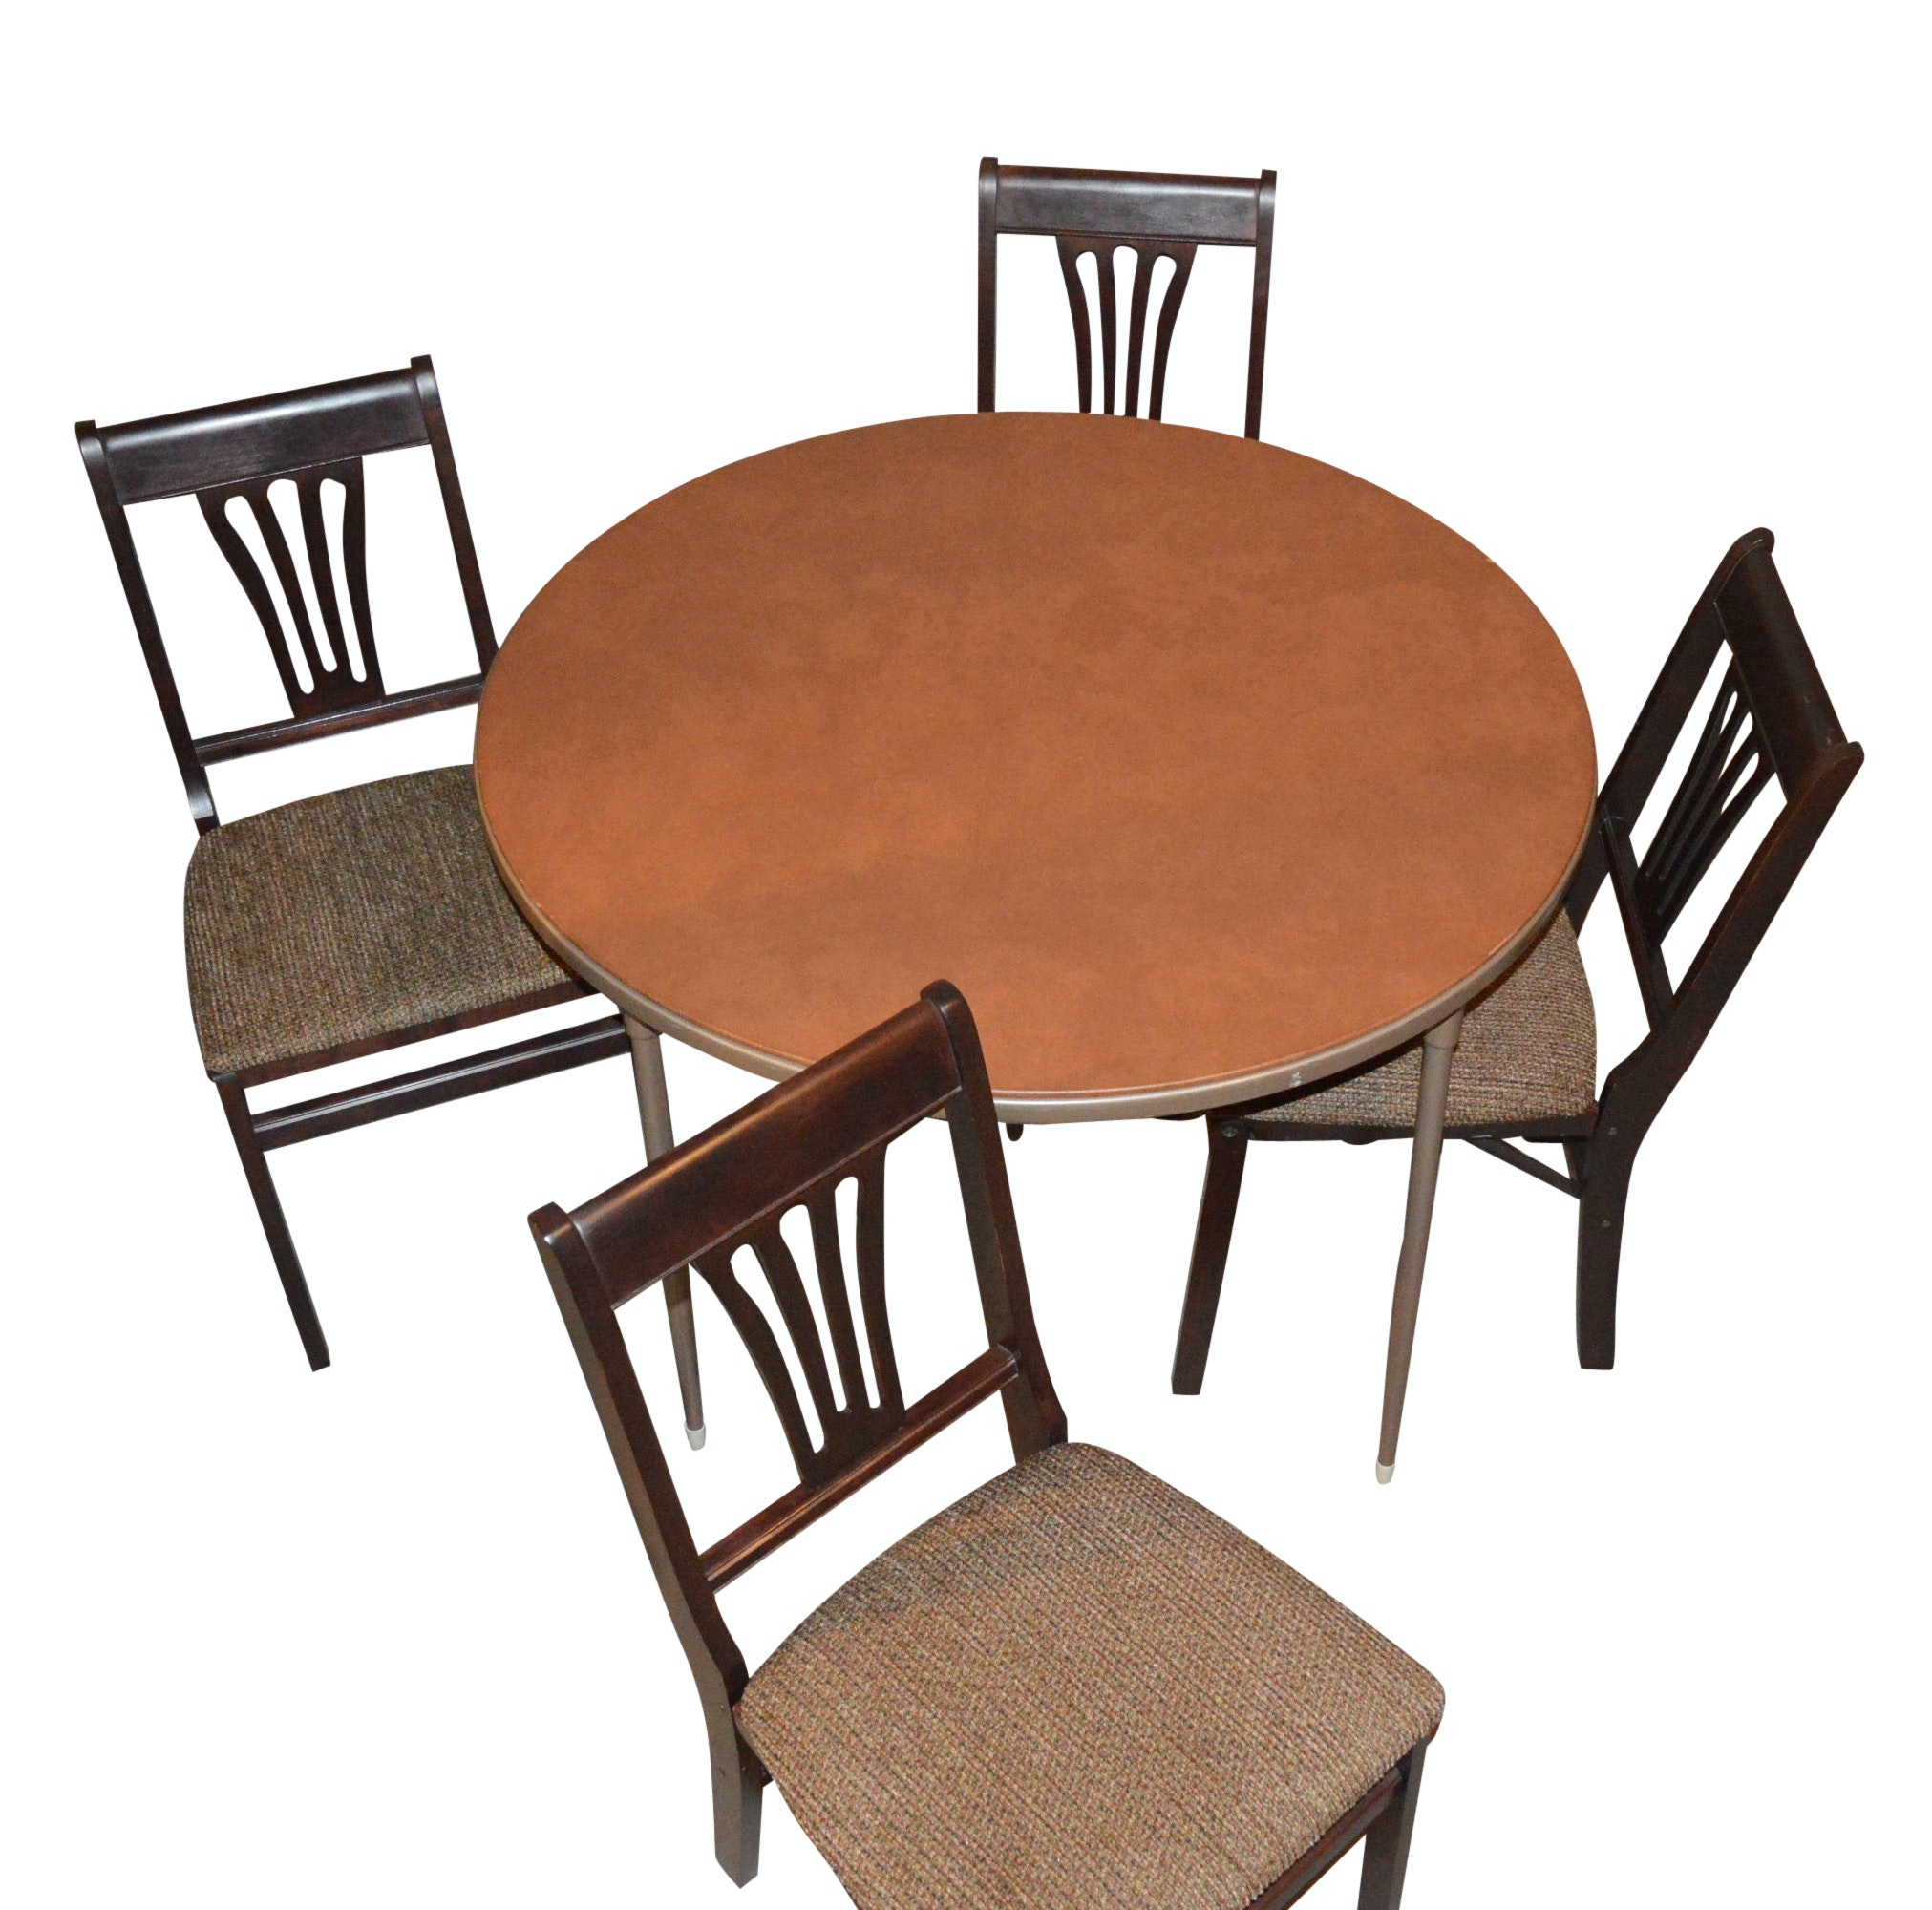 Round Folding Table with Four Folding Chairs